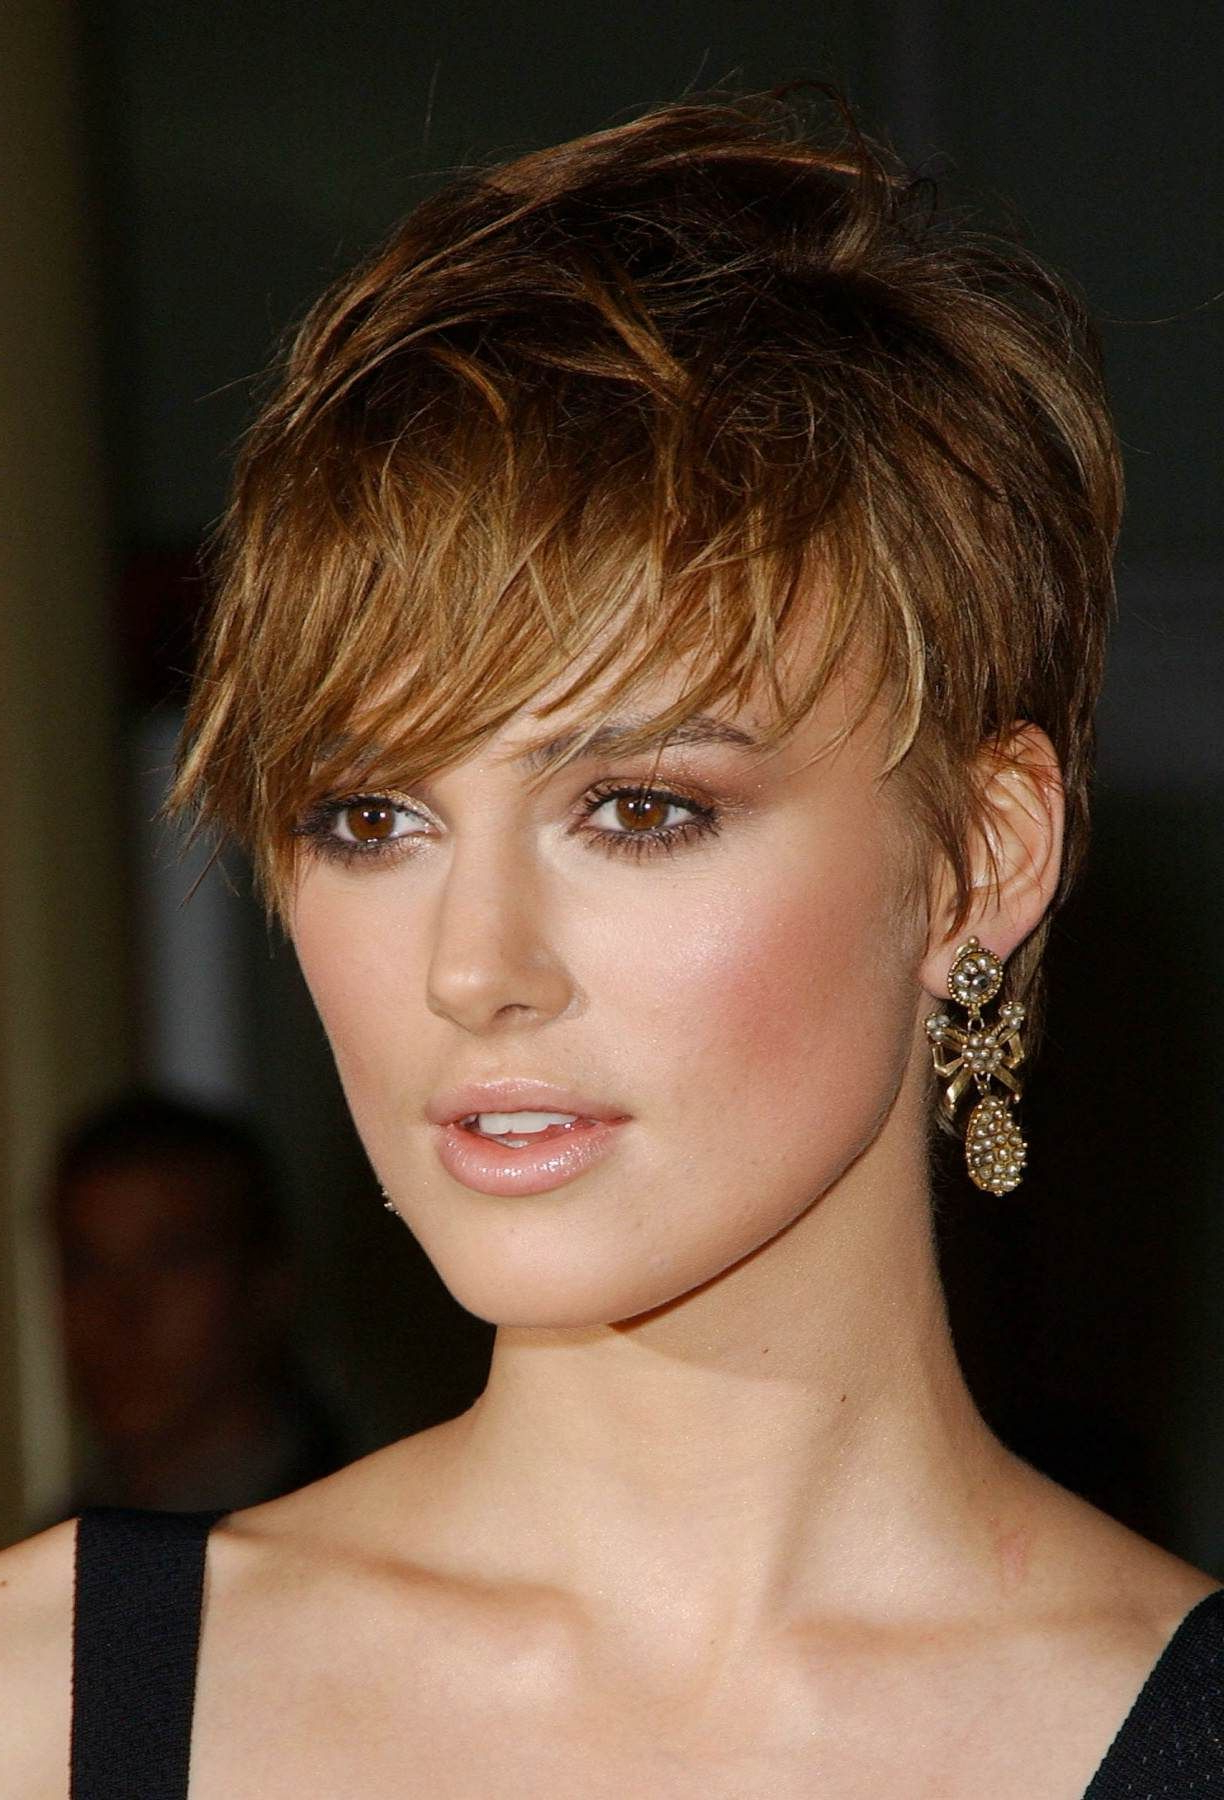 Keira Knightley – Short Pixie Cut | ~ Hairdos ~ In 2018 | Pinterest Inside Keira Knightley Short Haircuts (View 5 of 25)